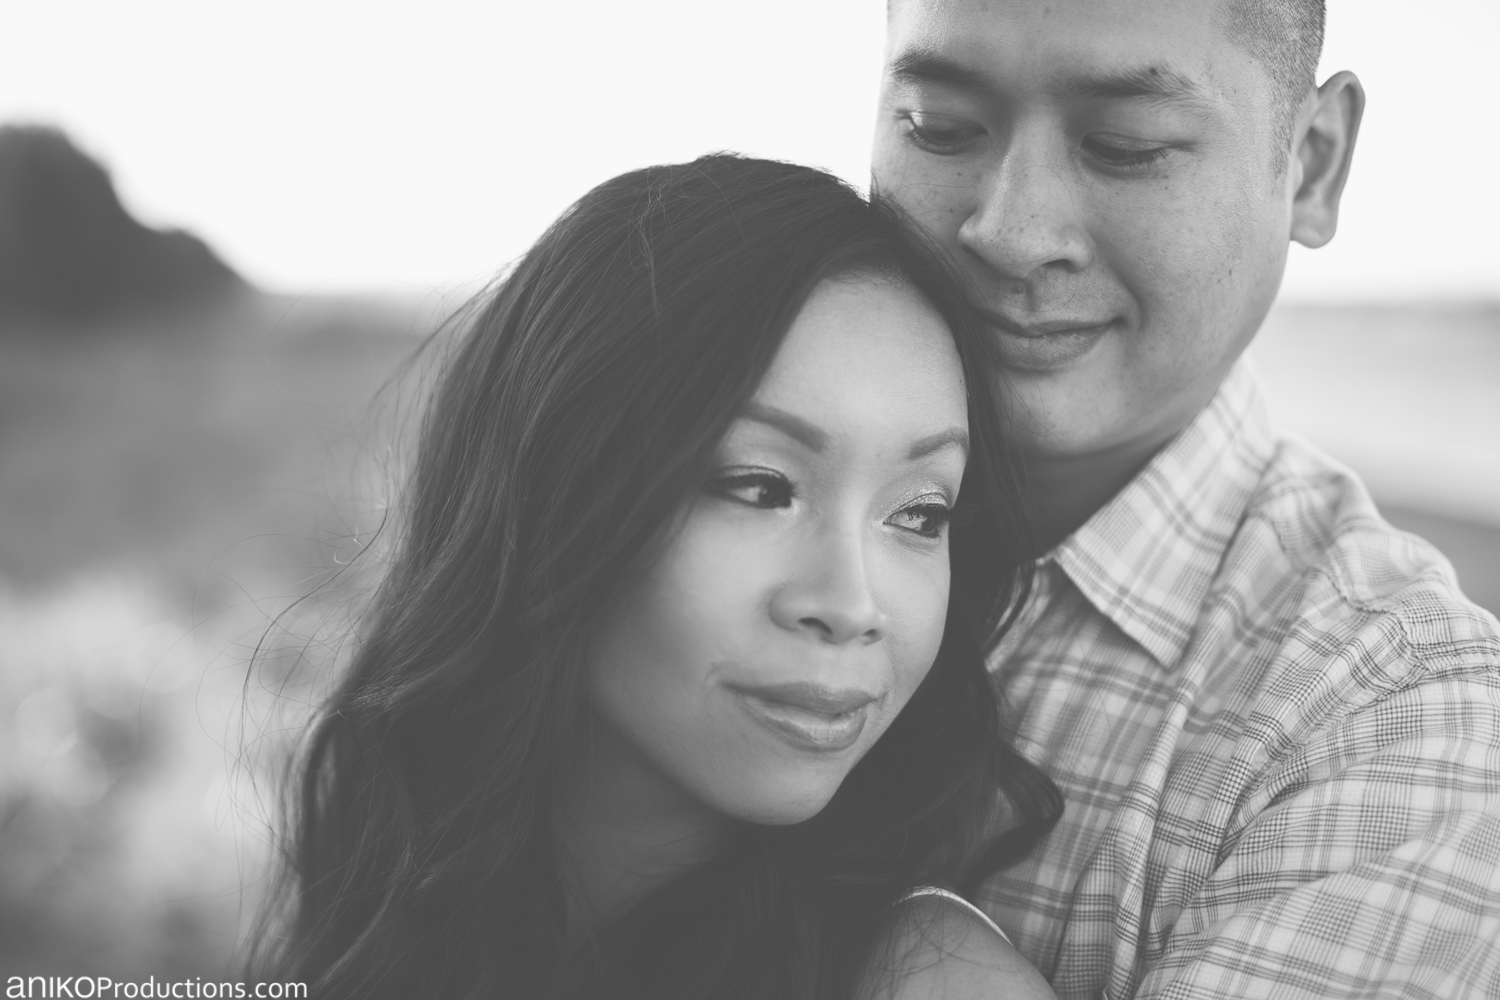 sauvie-island-engagement-photo-beach1